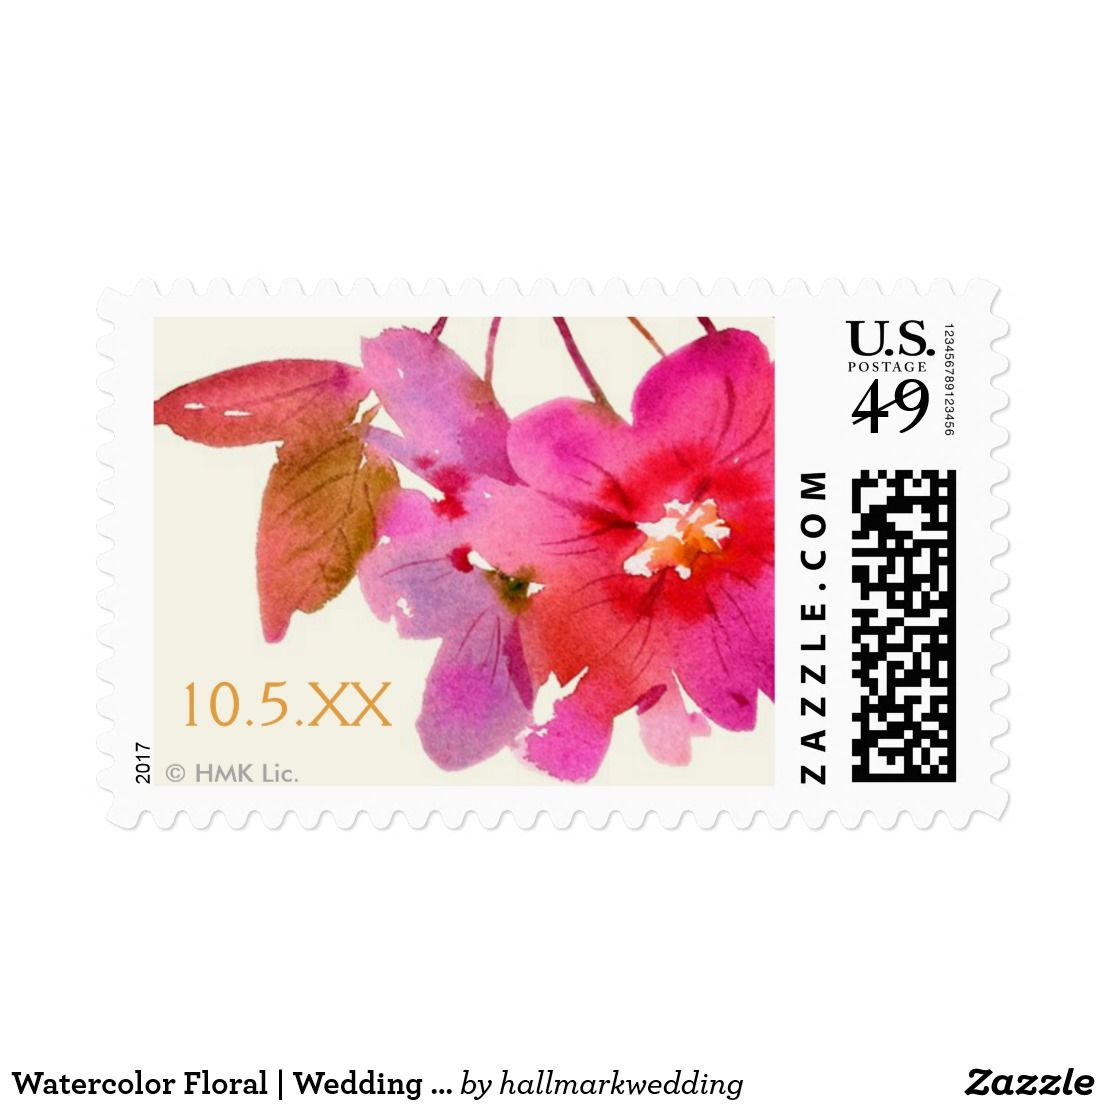 Watercolor Floral   Wedding Date Postage Get exceptional designs, values, and quality with invitations, announcements and postage from Hallmark.